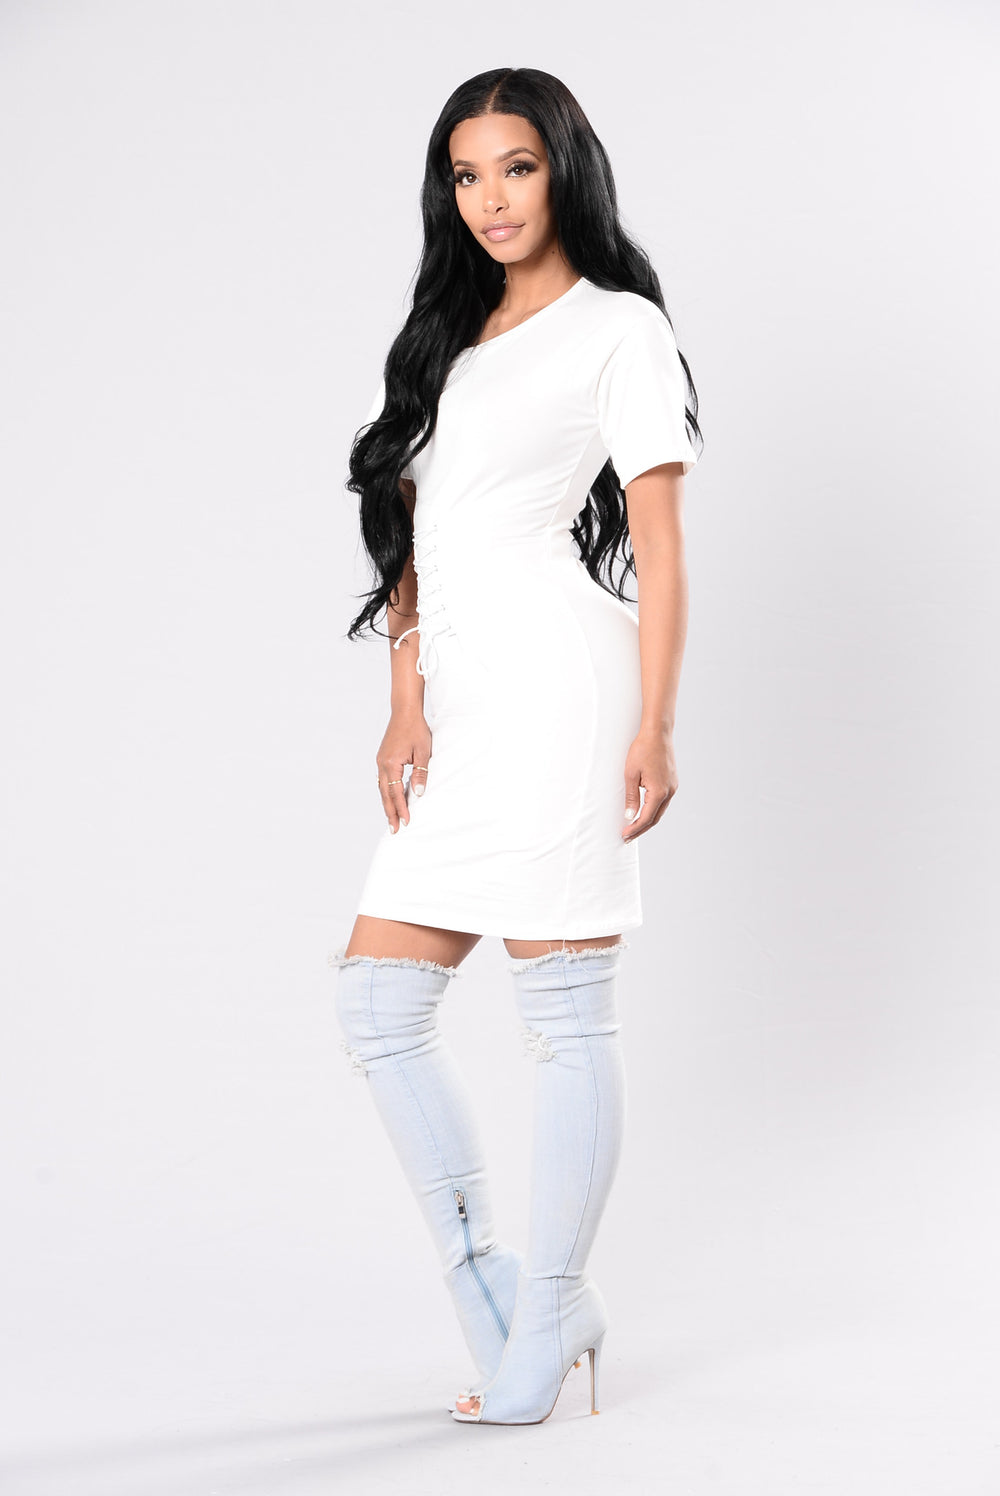 Sneaking Out The Back Door Dress - White